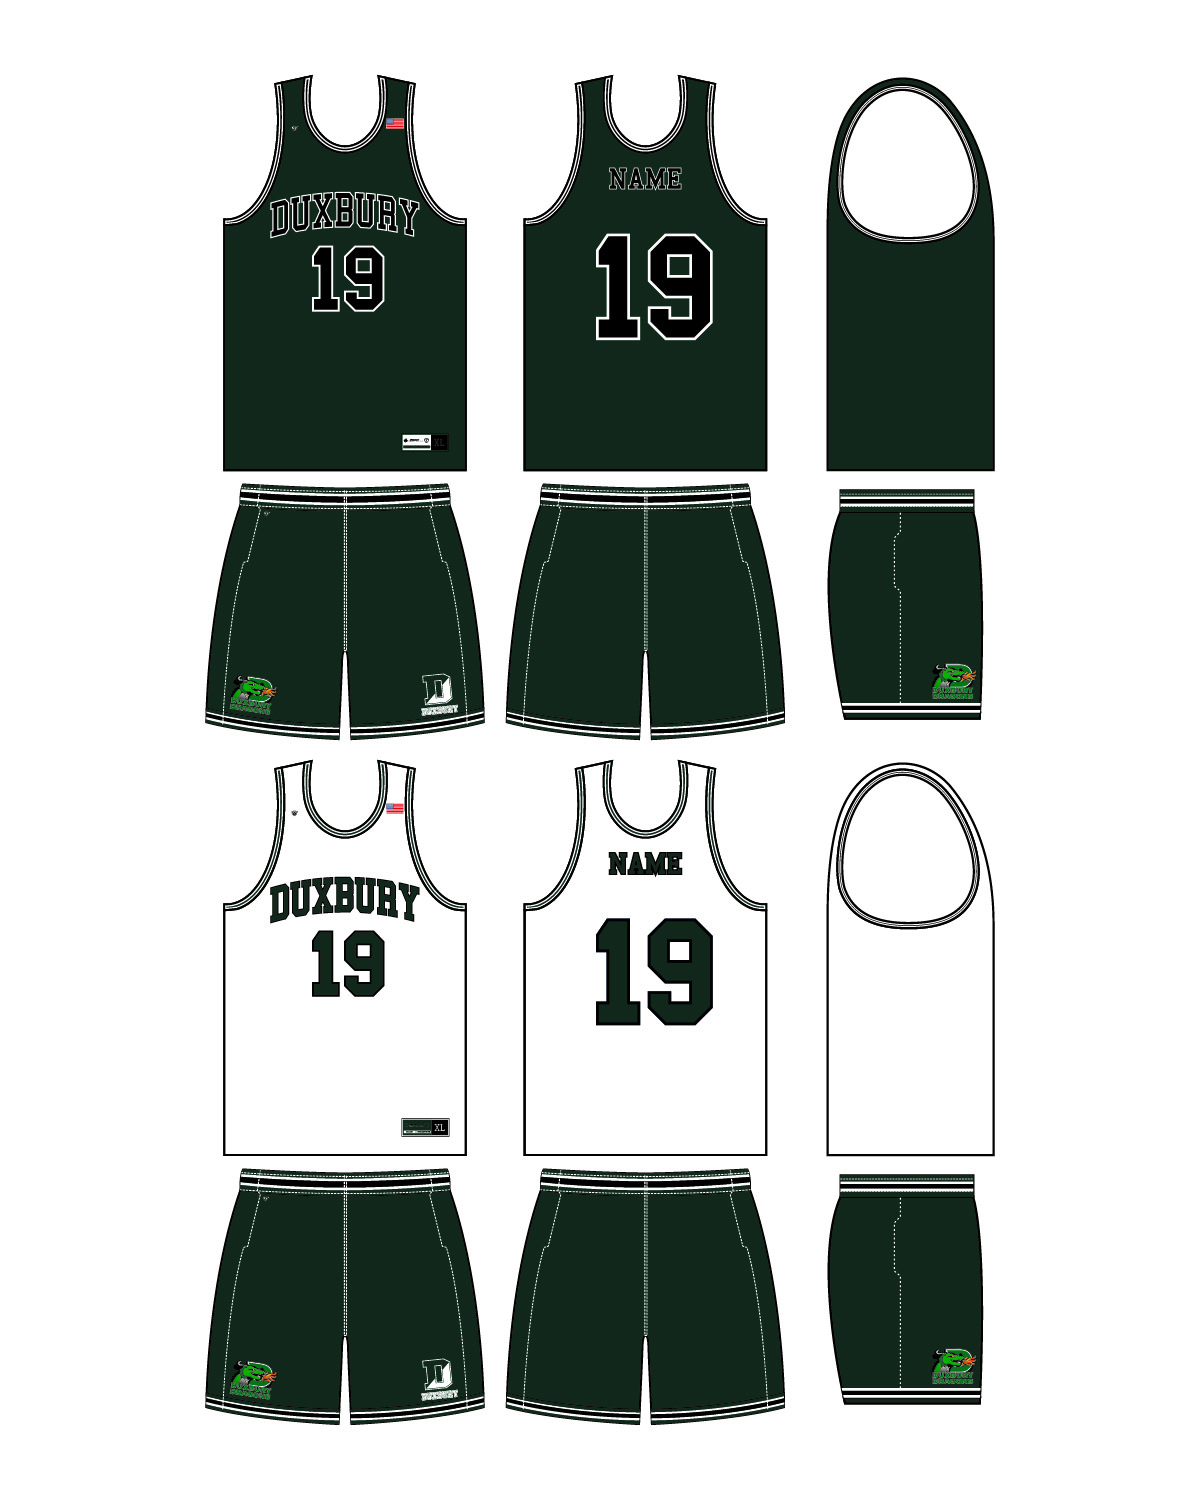 Custom Sublimated Basketball Uniform - Duxbury 2